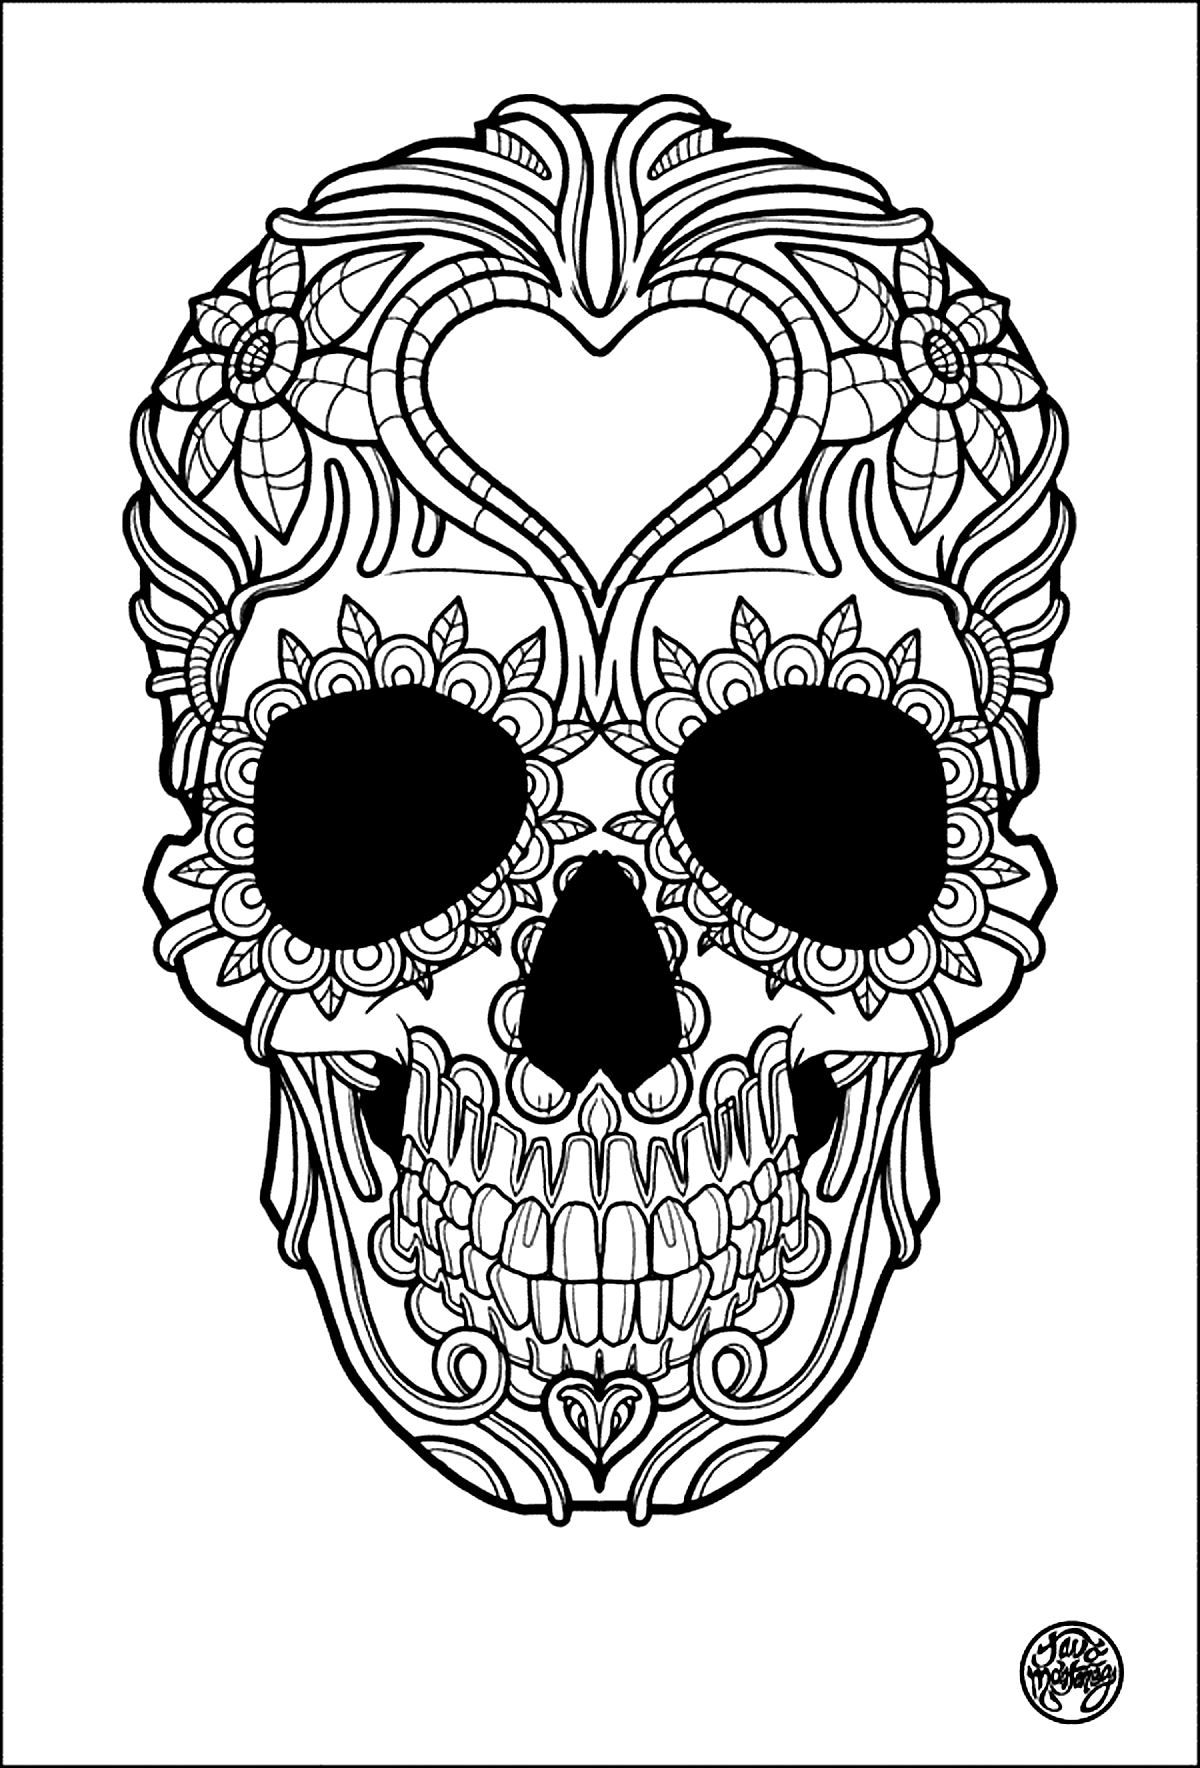 Skull and cross bone coloring pages free az coloring pages for Skull bones coloring pages